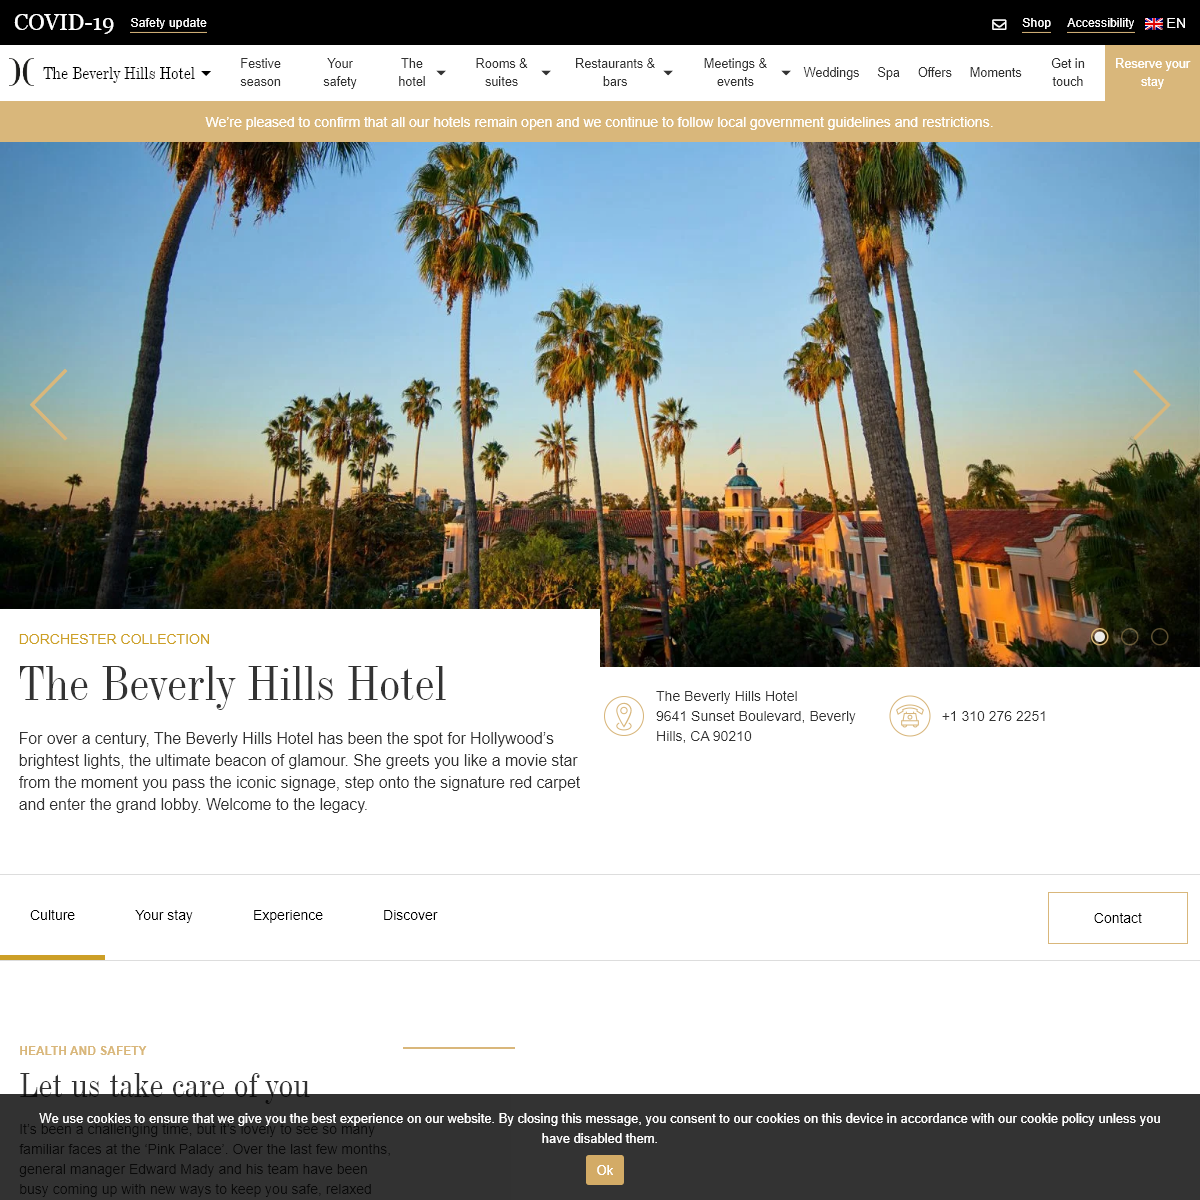 The Beverly Hills Hotel - 5-star hotel - Dorchester Collection